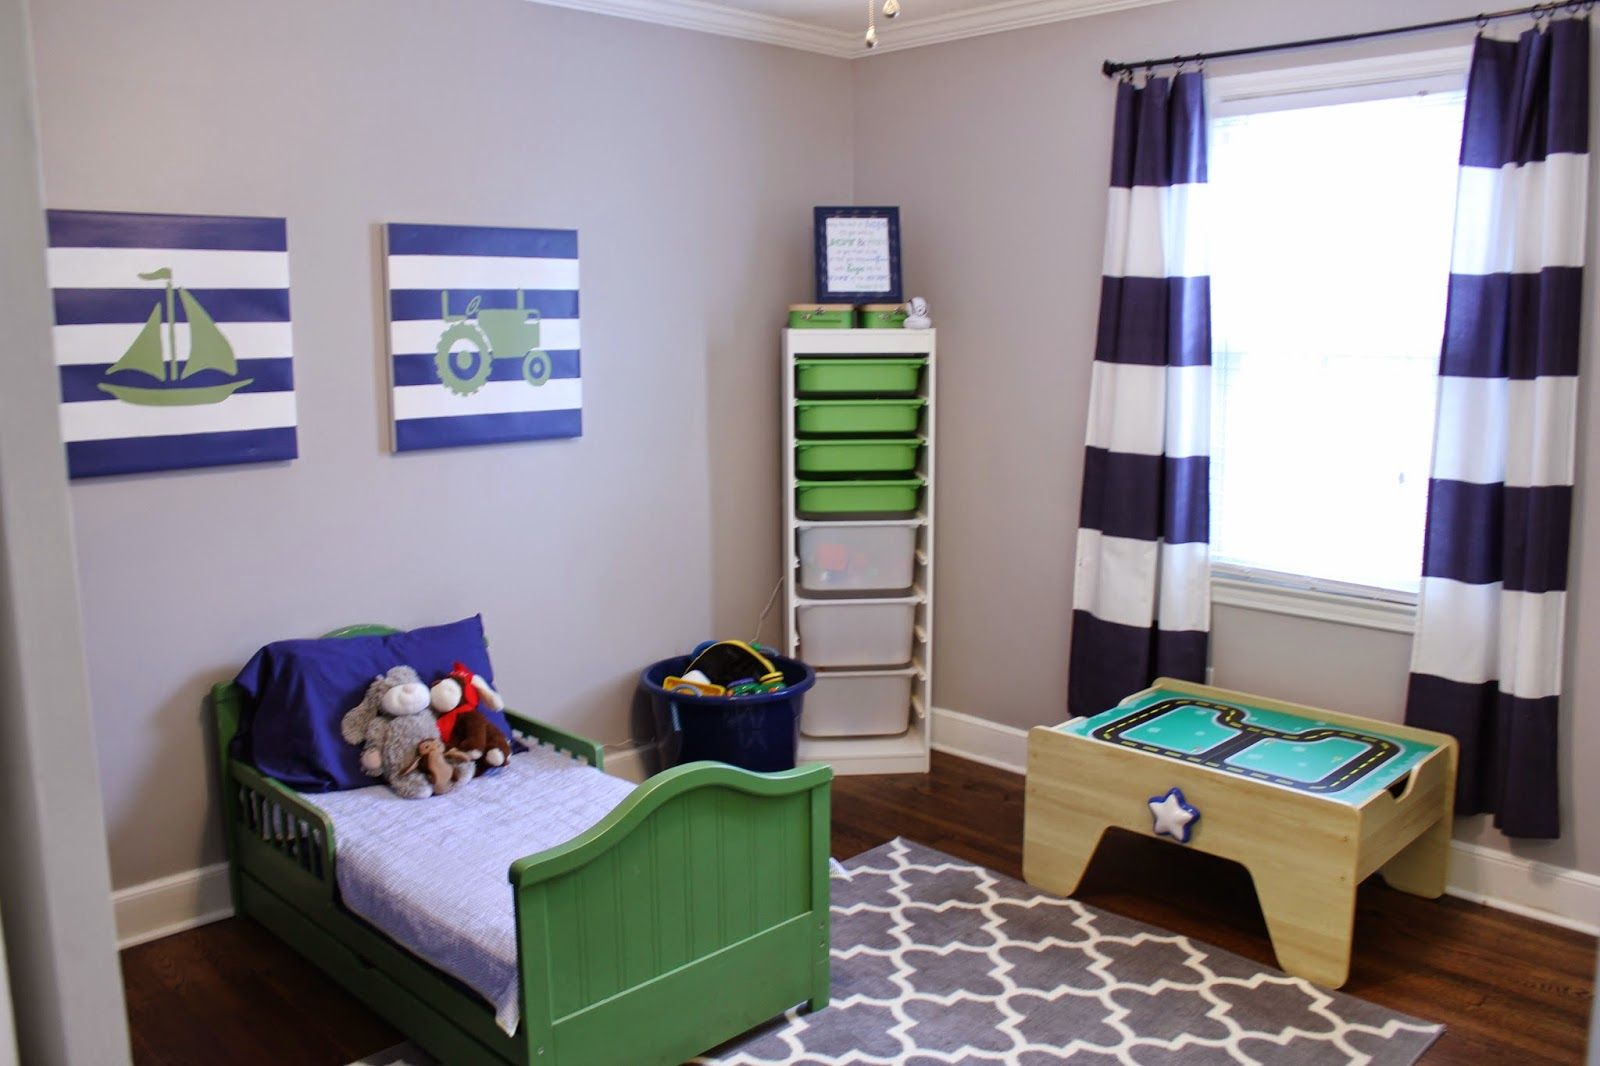 Bedroom colors blue and green - Navy Blue Green Toddler Boy Bedroom Transportation Theme Room